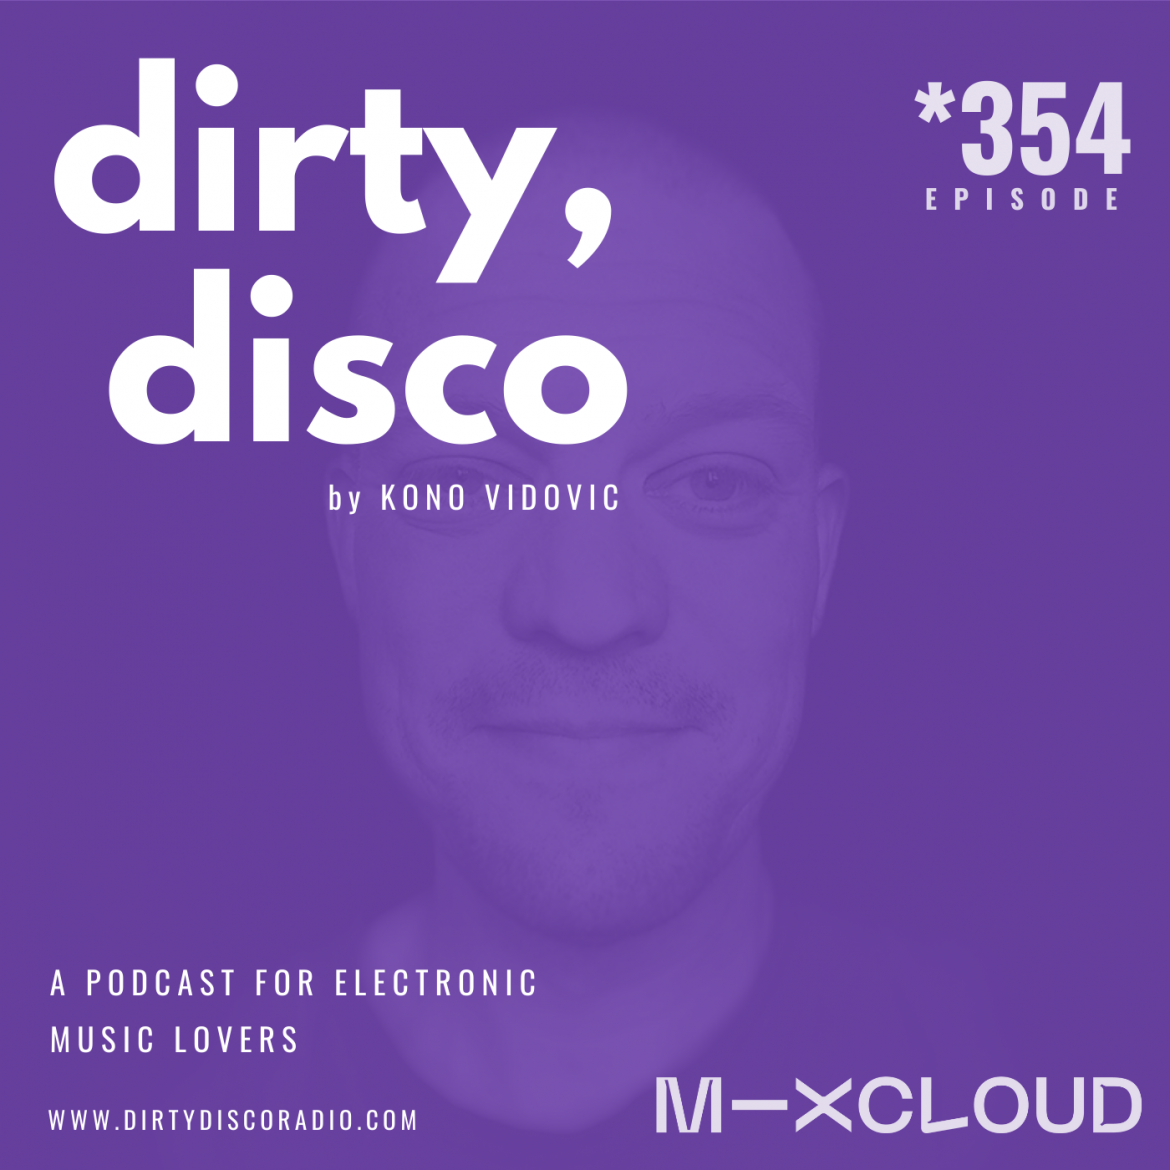 25 Must Have Electronic Dance Music Tracks | May 2020 | Dirty Disco 354 |